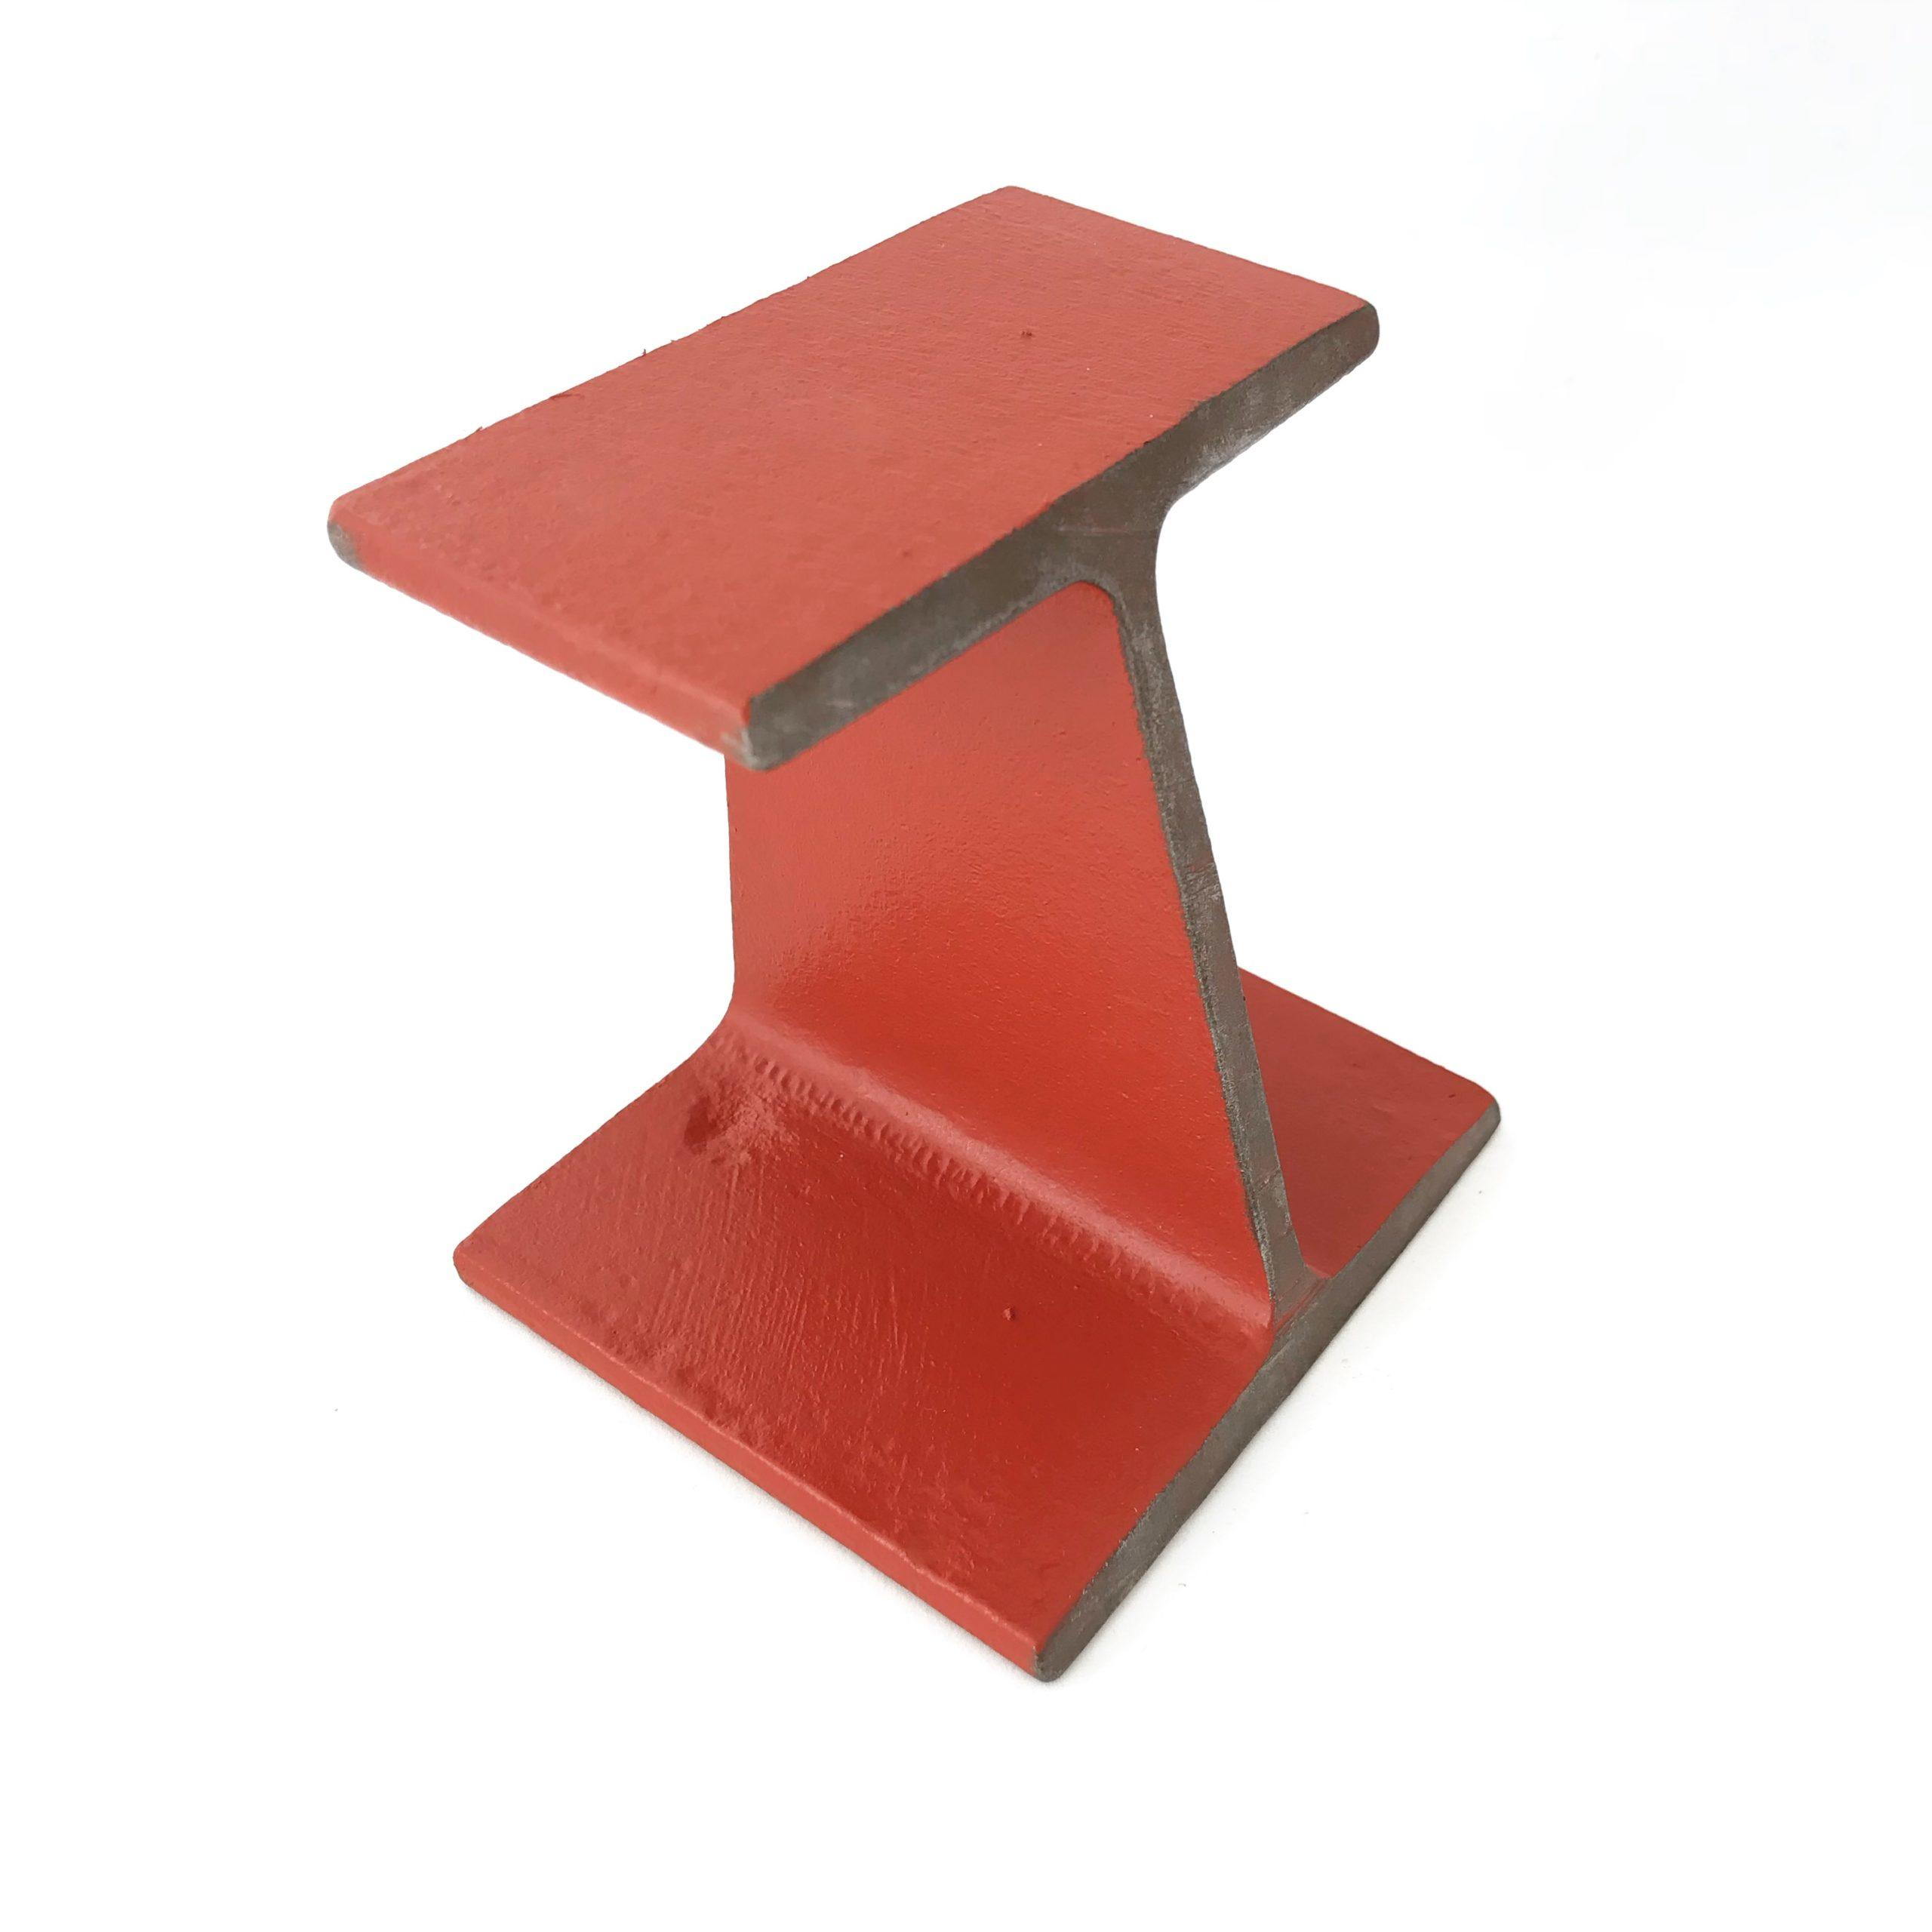 Golden Gate Bridge Steel I-Beam Paperweight and Bookend